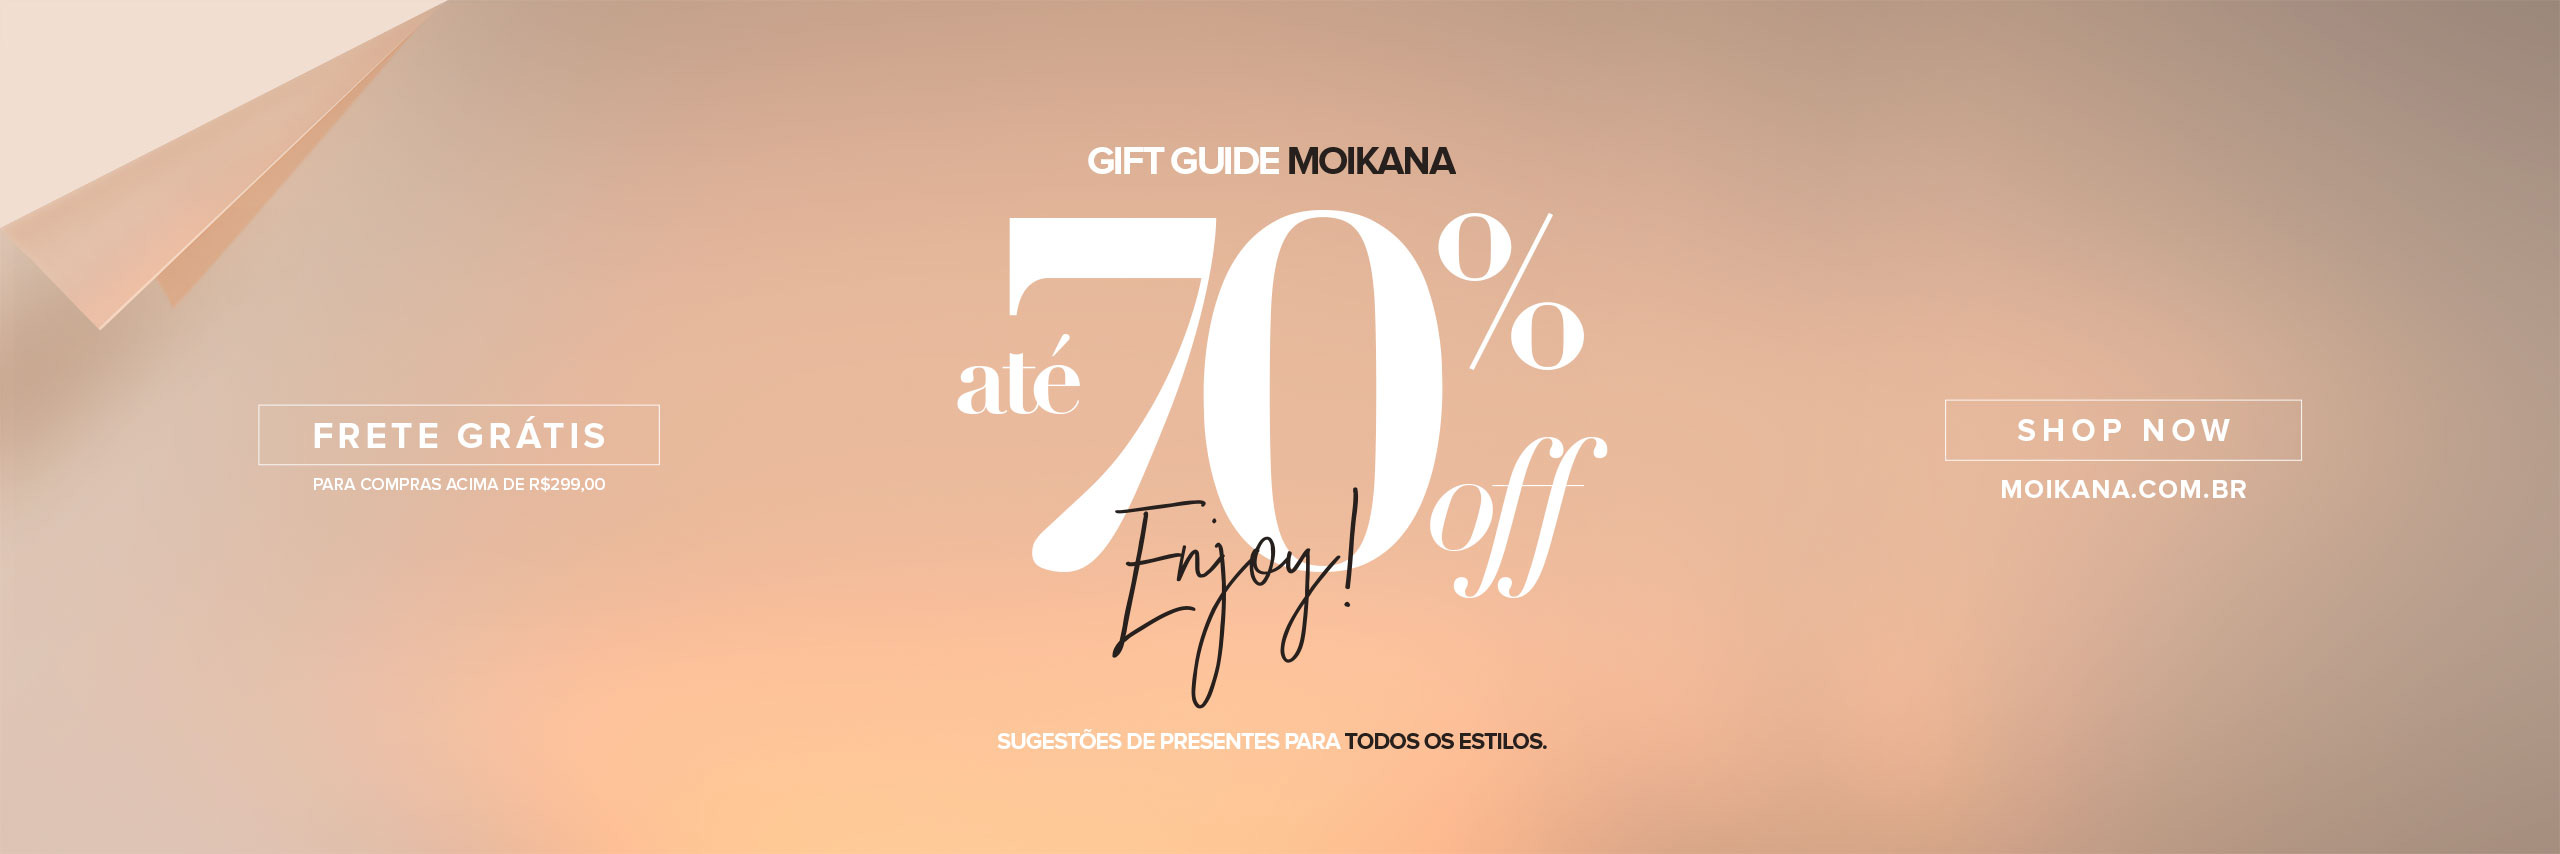 Gift 70% Off